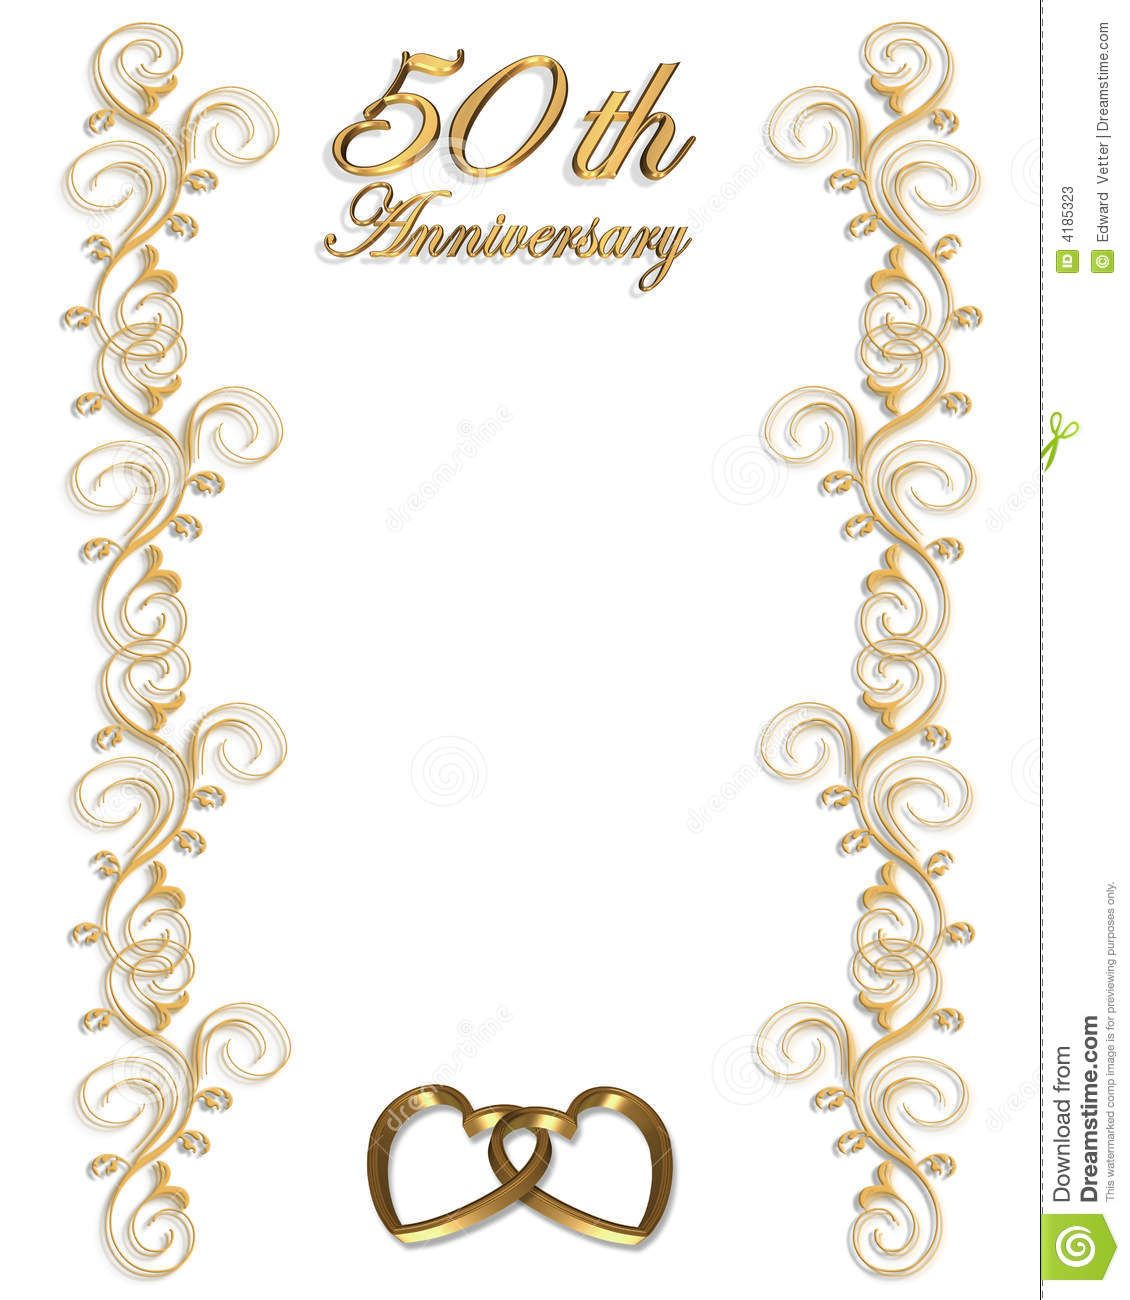 50th Anniversary Hearts Clipart.